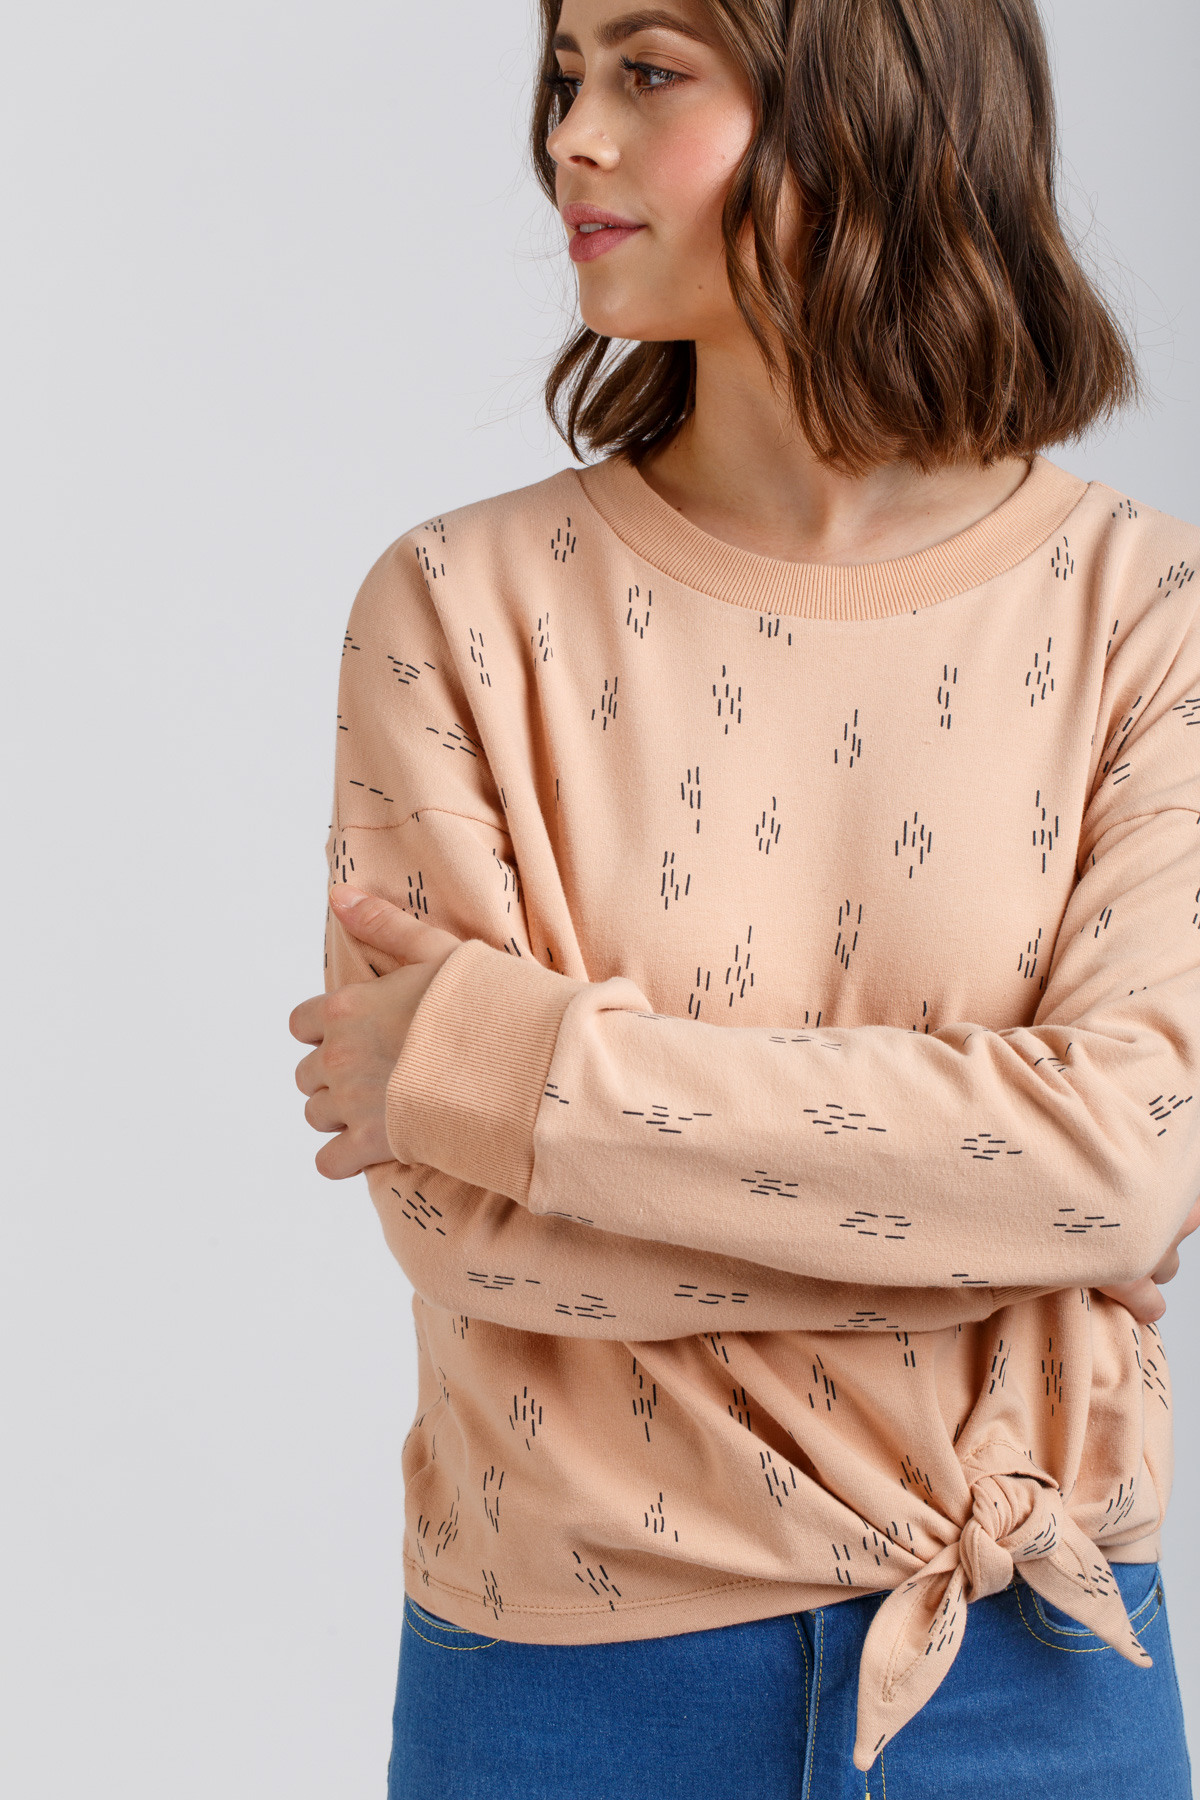 Megan Nielsen Jarrah sweater sewing pattern // modular pattern with four included variations